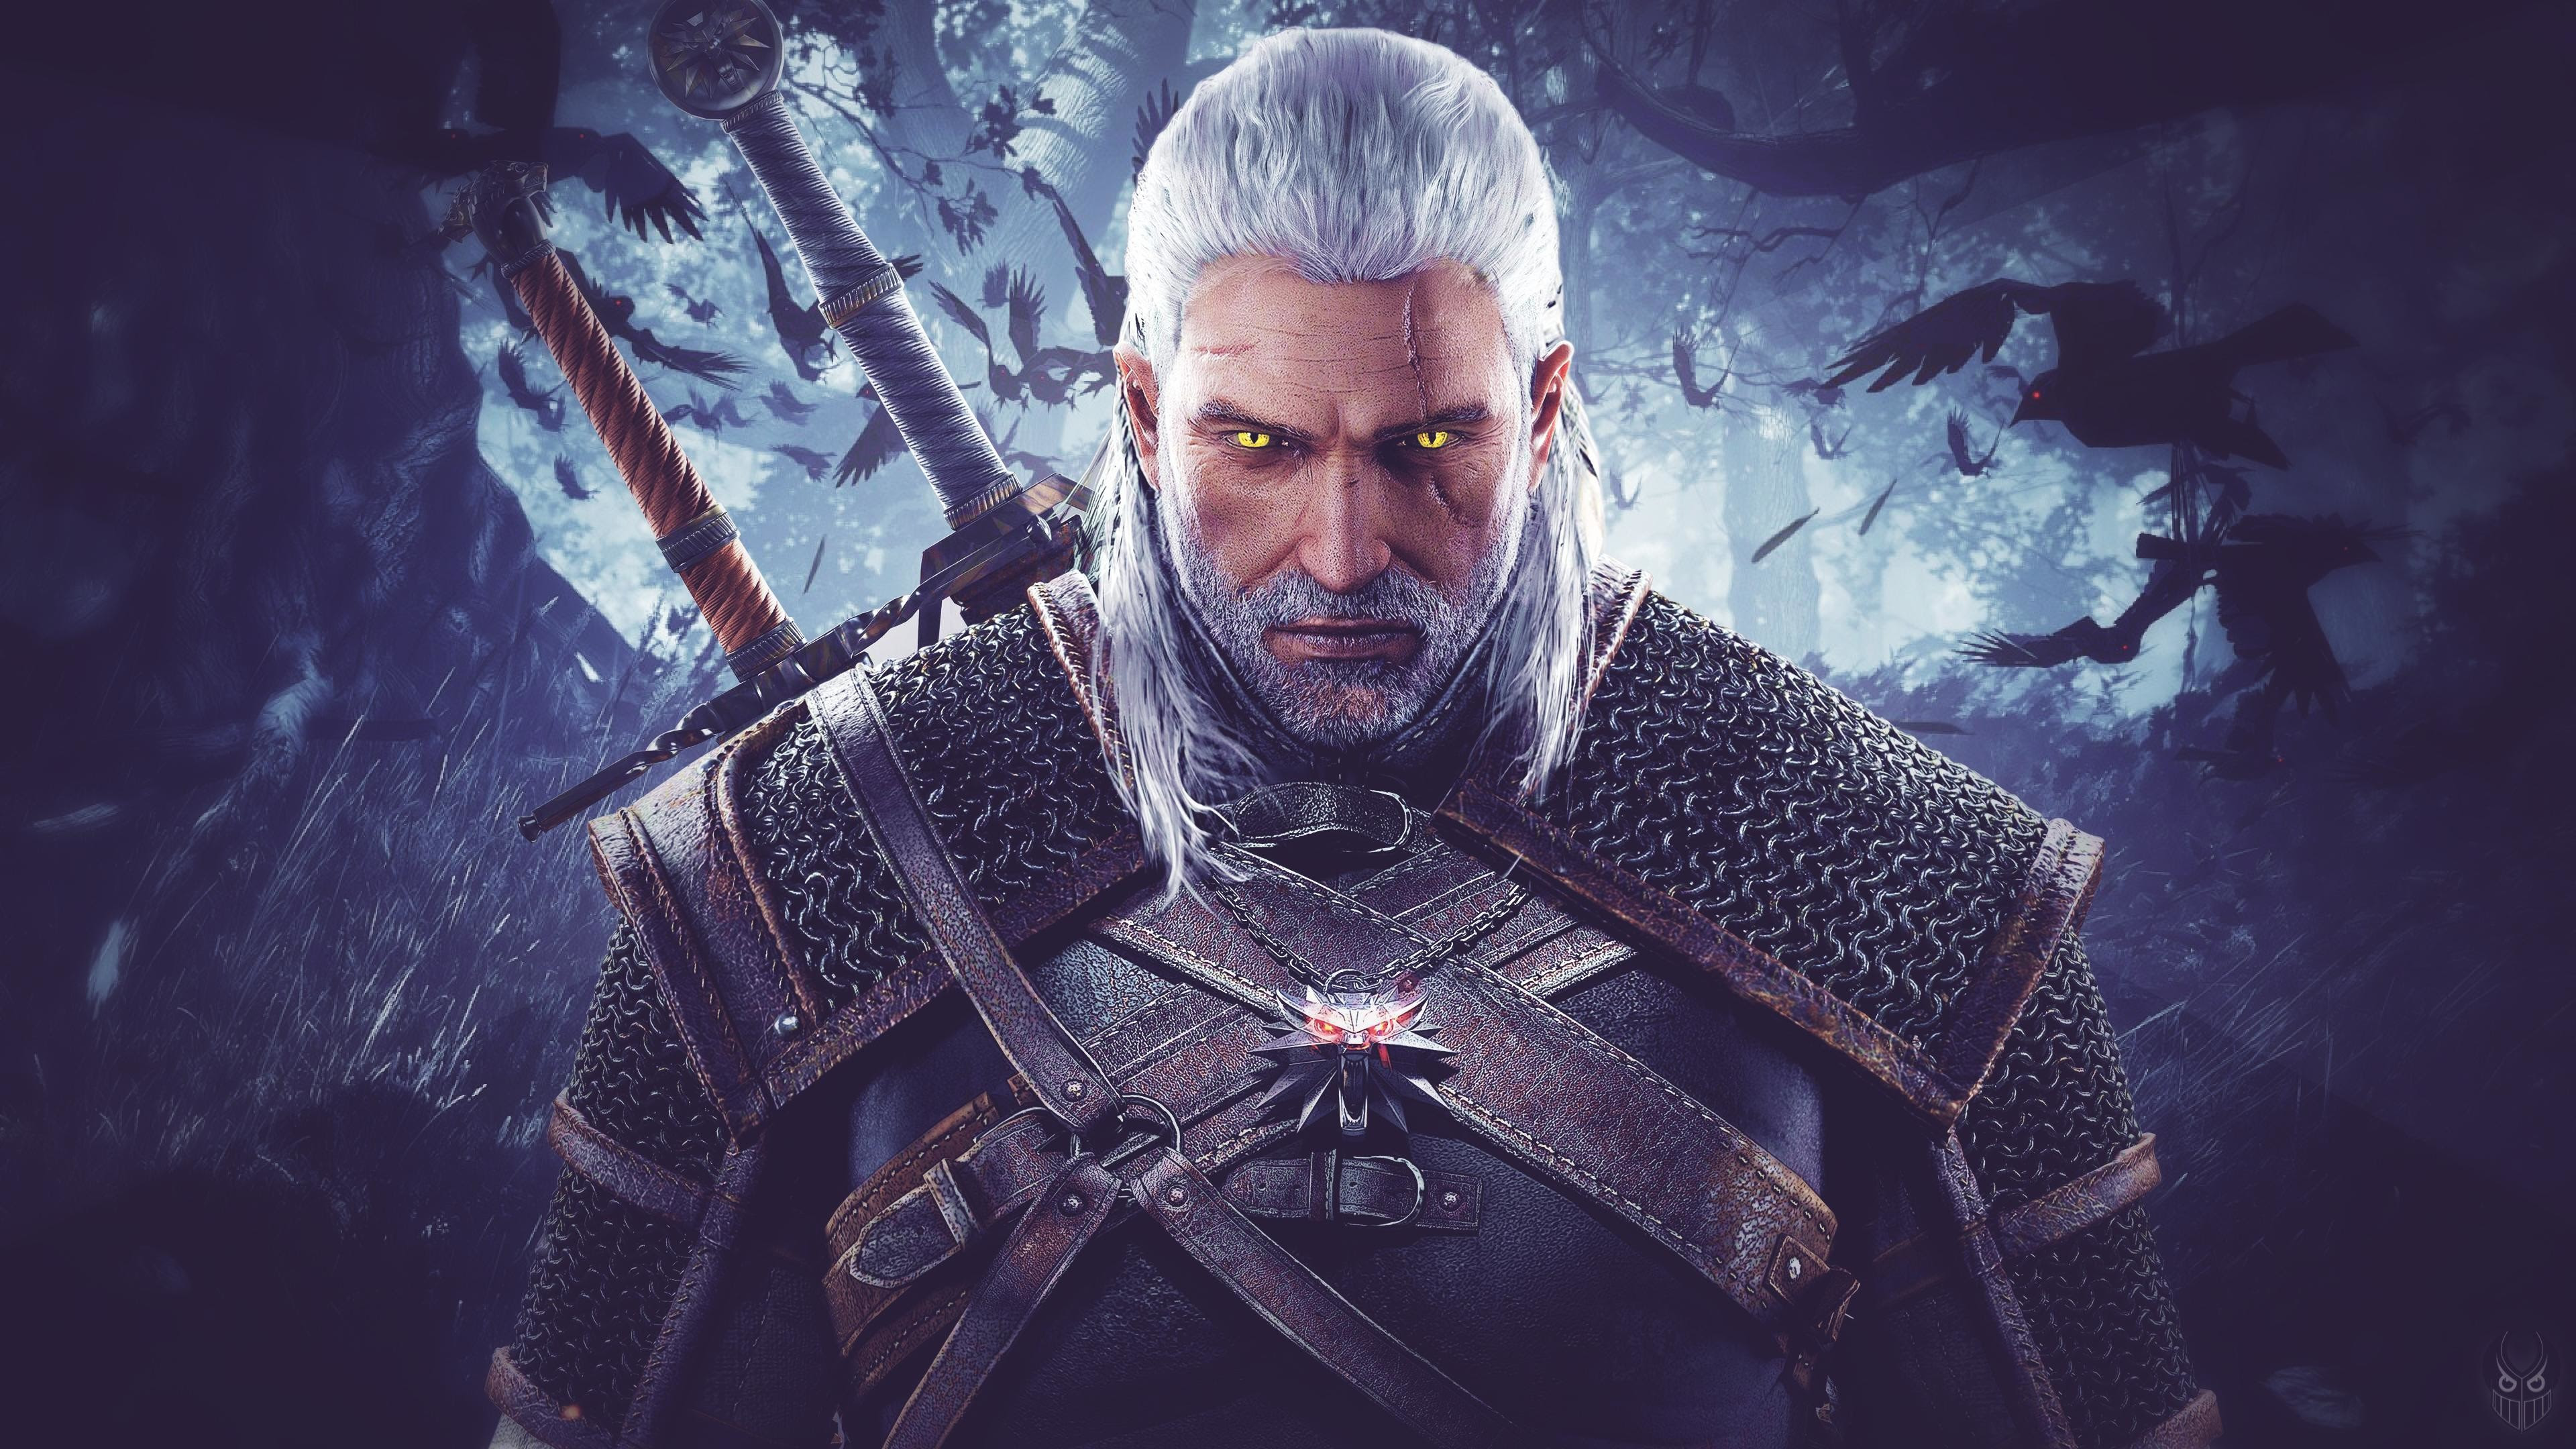 Witcher 3 4k Wallpaper 52 Images